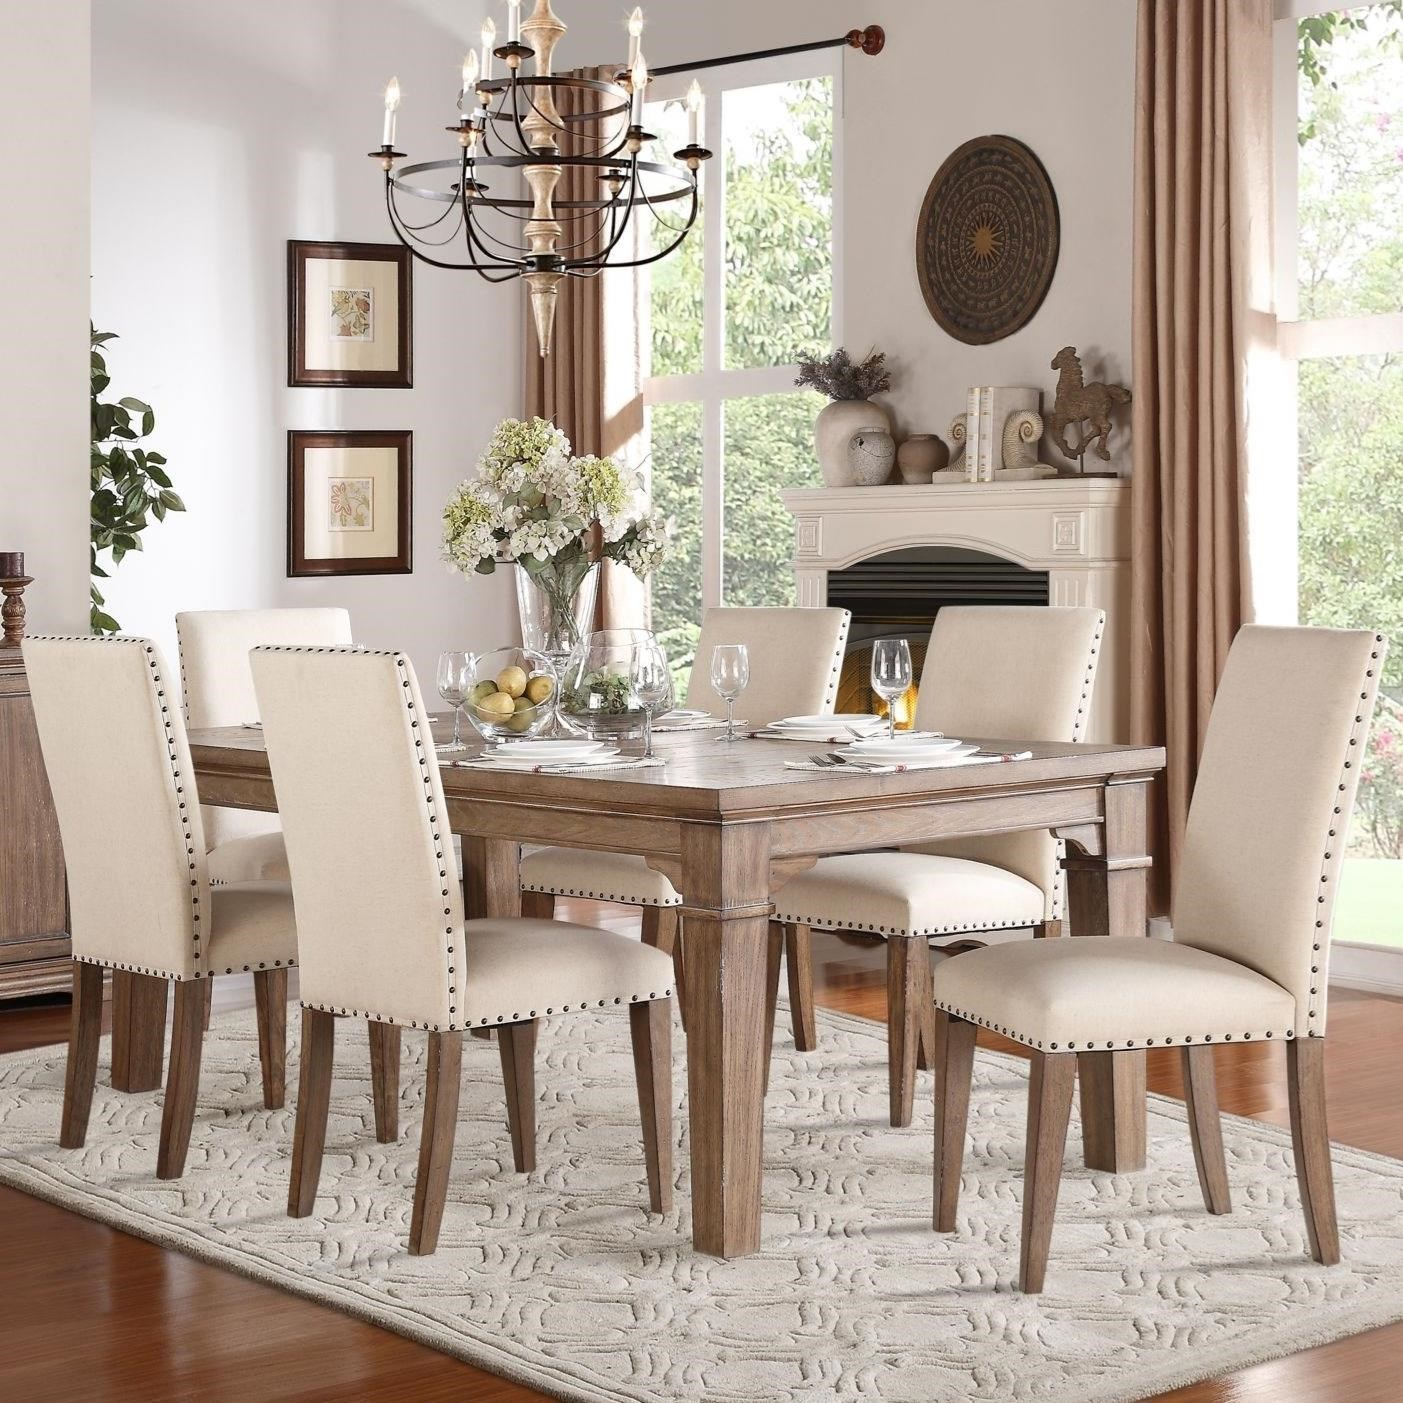 Mill Valley Relaxed Vintage Dining Table and Chair Set with Nailhead Trim on Chairs by Homelegance  sc 1 st  Becku0027s Furniture : vintage kitchen table and chairs set - Cheerinfomania.Com